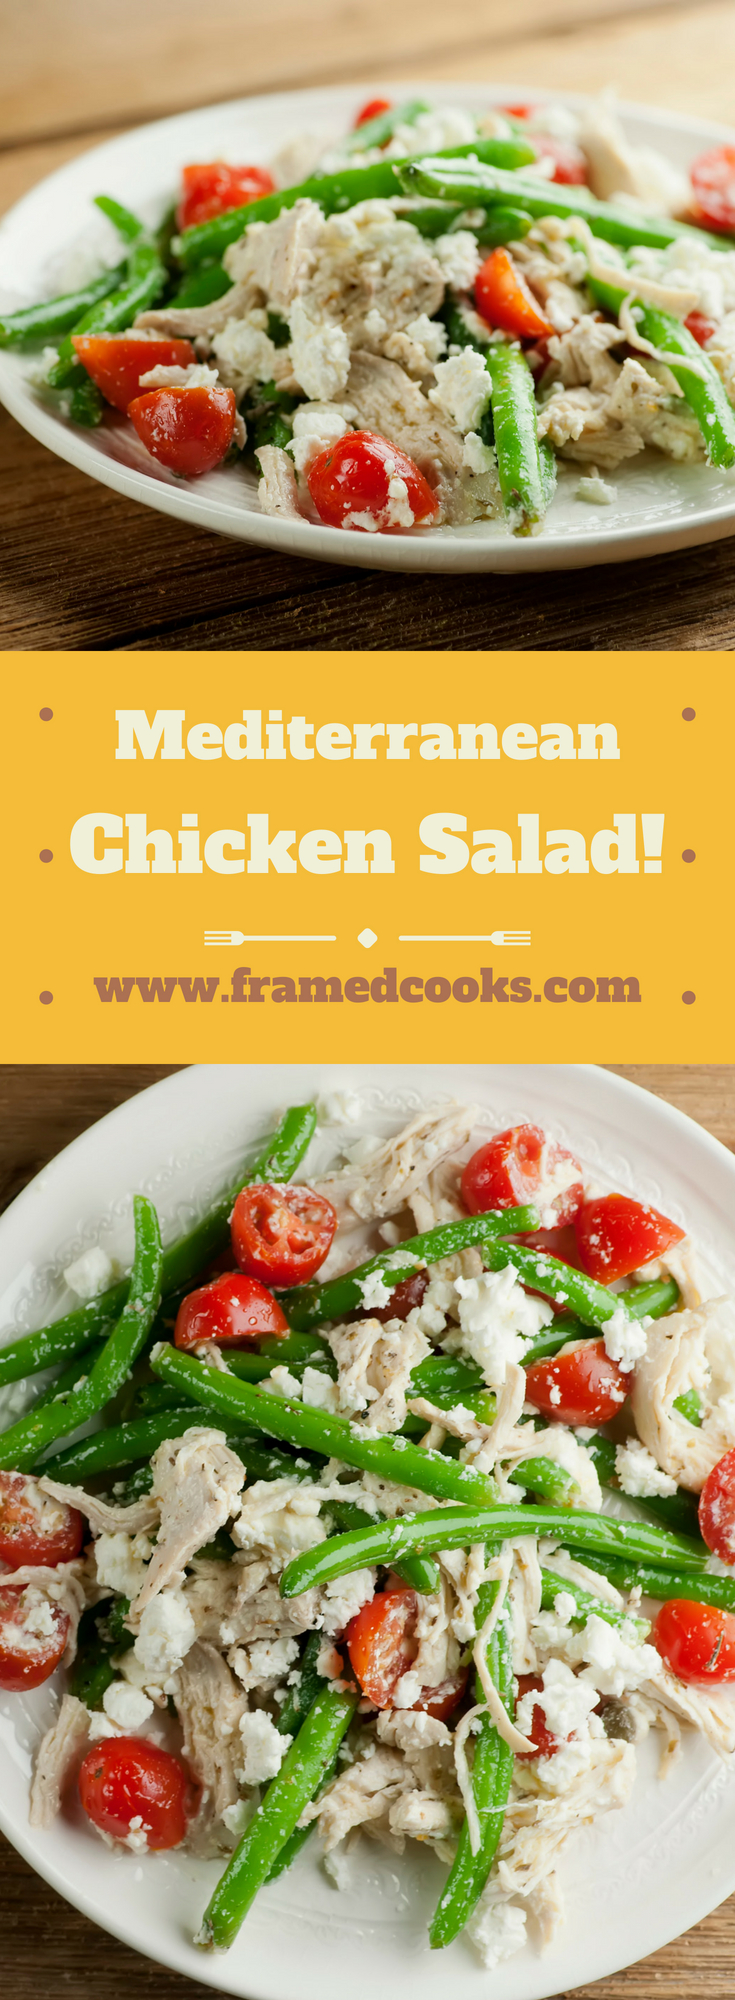 Chicken salad takes on a European flavor in this fresh summer recipe! Mediterranean chicken salad features feta cheese with tomatoes and green beans, spicy capers and aromatic oregano for a light and delicious spin on the classic lunchtime favorite.